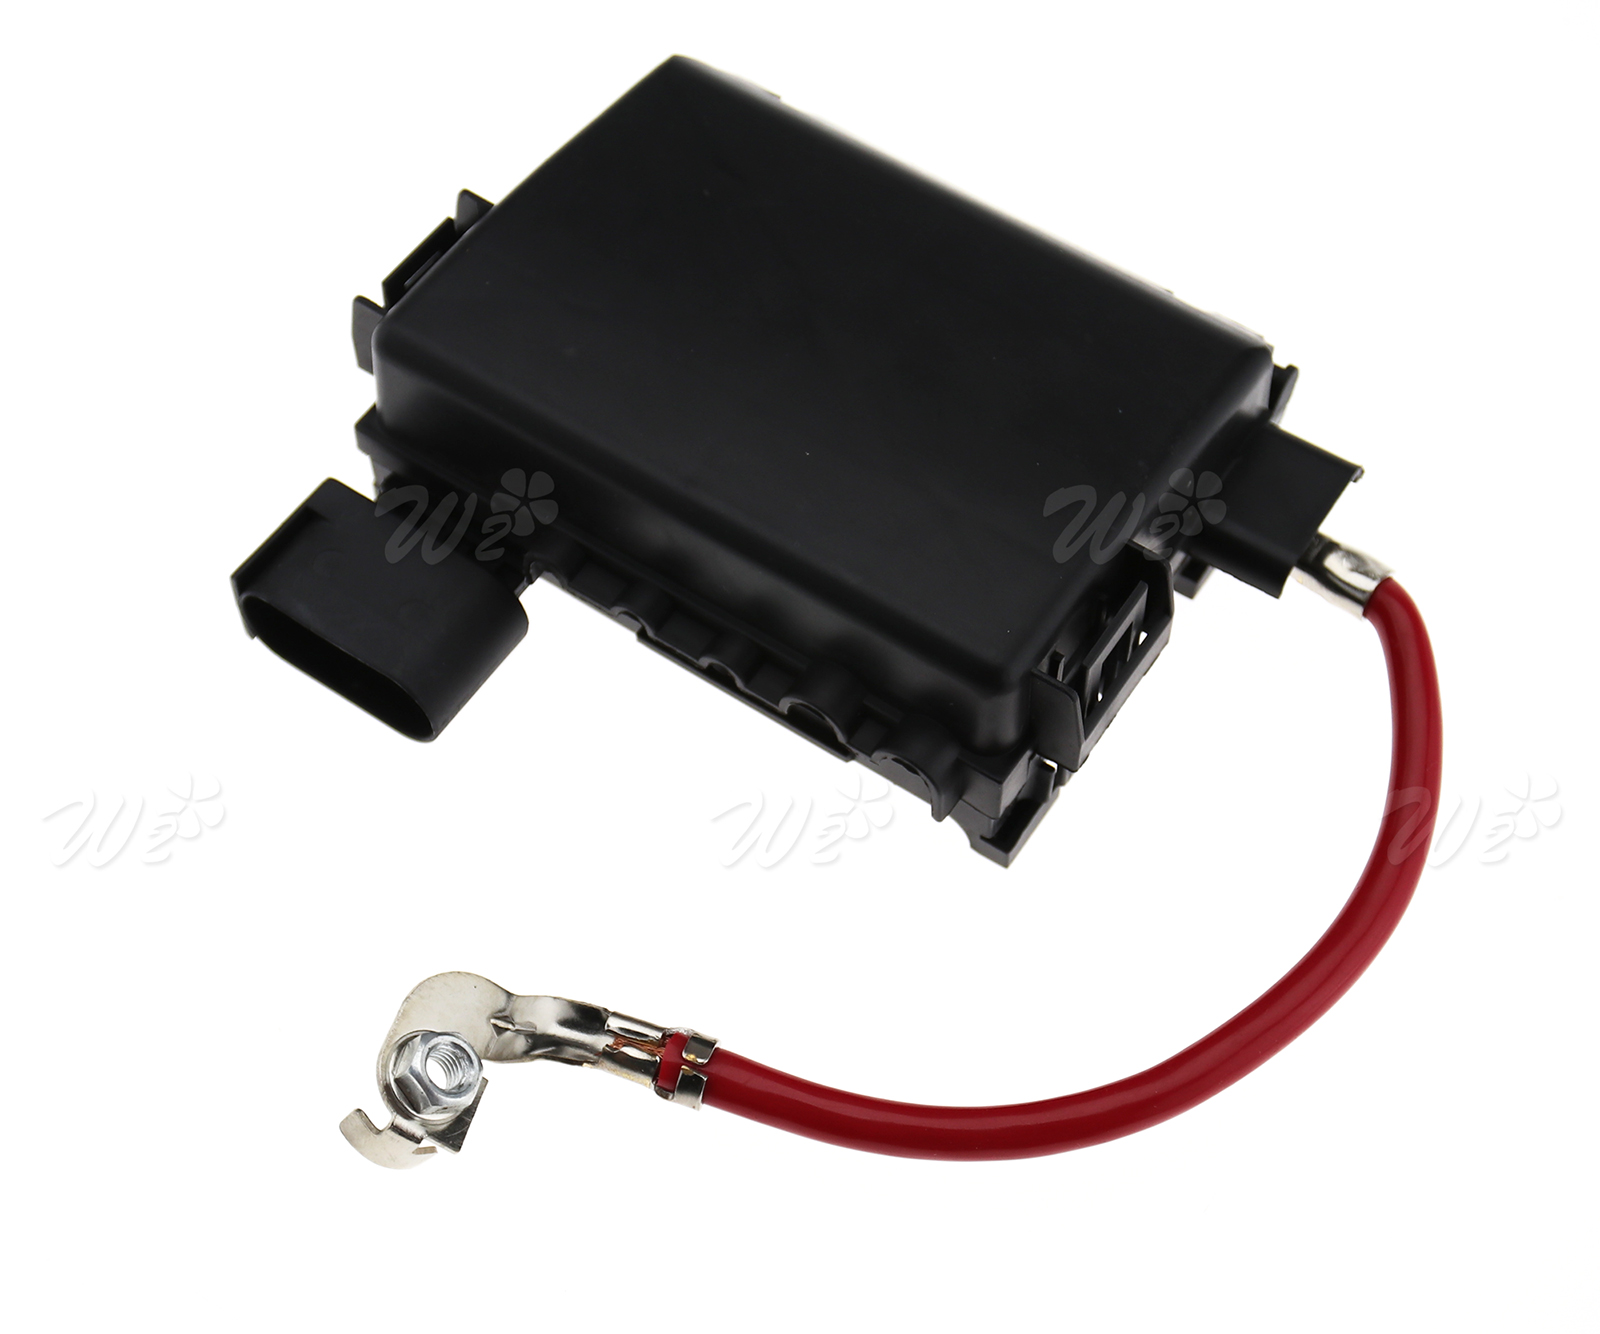 Details about Fuse Box 3-Pin Battery Terminal For Volkswagen VW Golf on jetta alternator, jetta door panel, jetta cam sensor, jetta motor mount, jetta bumper guard, jetta trailing arm, jetta hood release, jetta sway bar, jetta loaded beam axle, jetta console, jetta fuse tool, jetta slave cylinder, jetta catalytic converter, jetta fuse card, jetta battery, jetta firing order, jetta relay box, jetta sportwagen 2011 fuse diagram, jetta shifter cable, jetta cigarette lighter fuse,